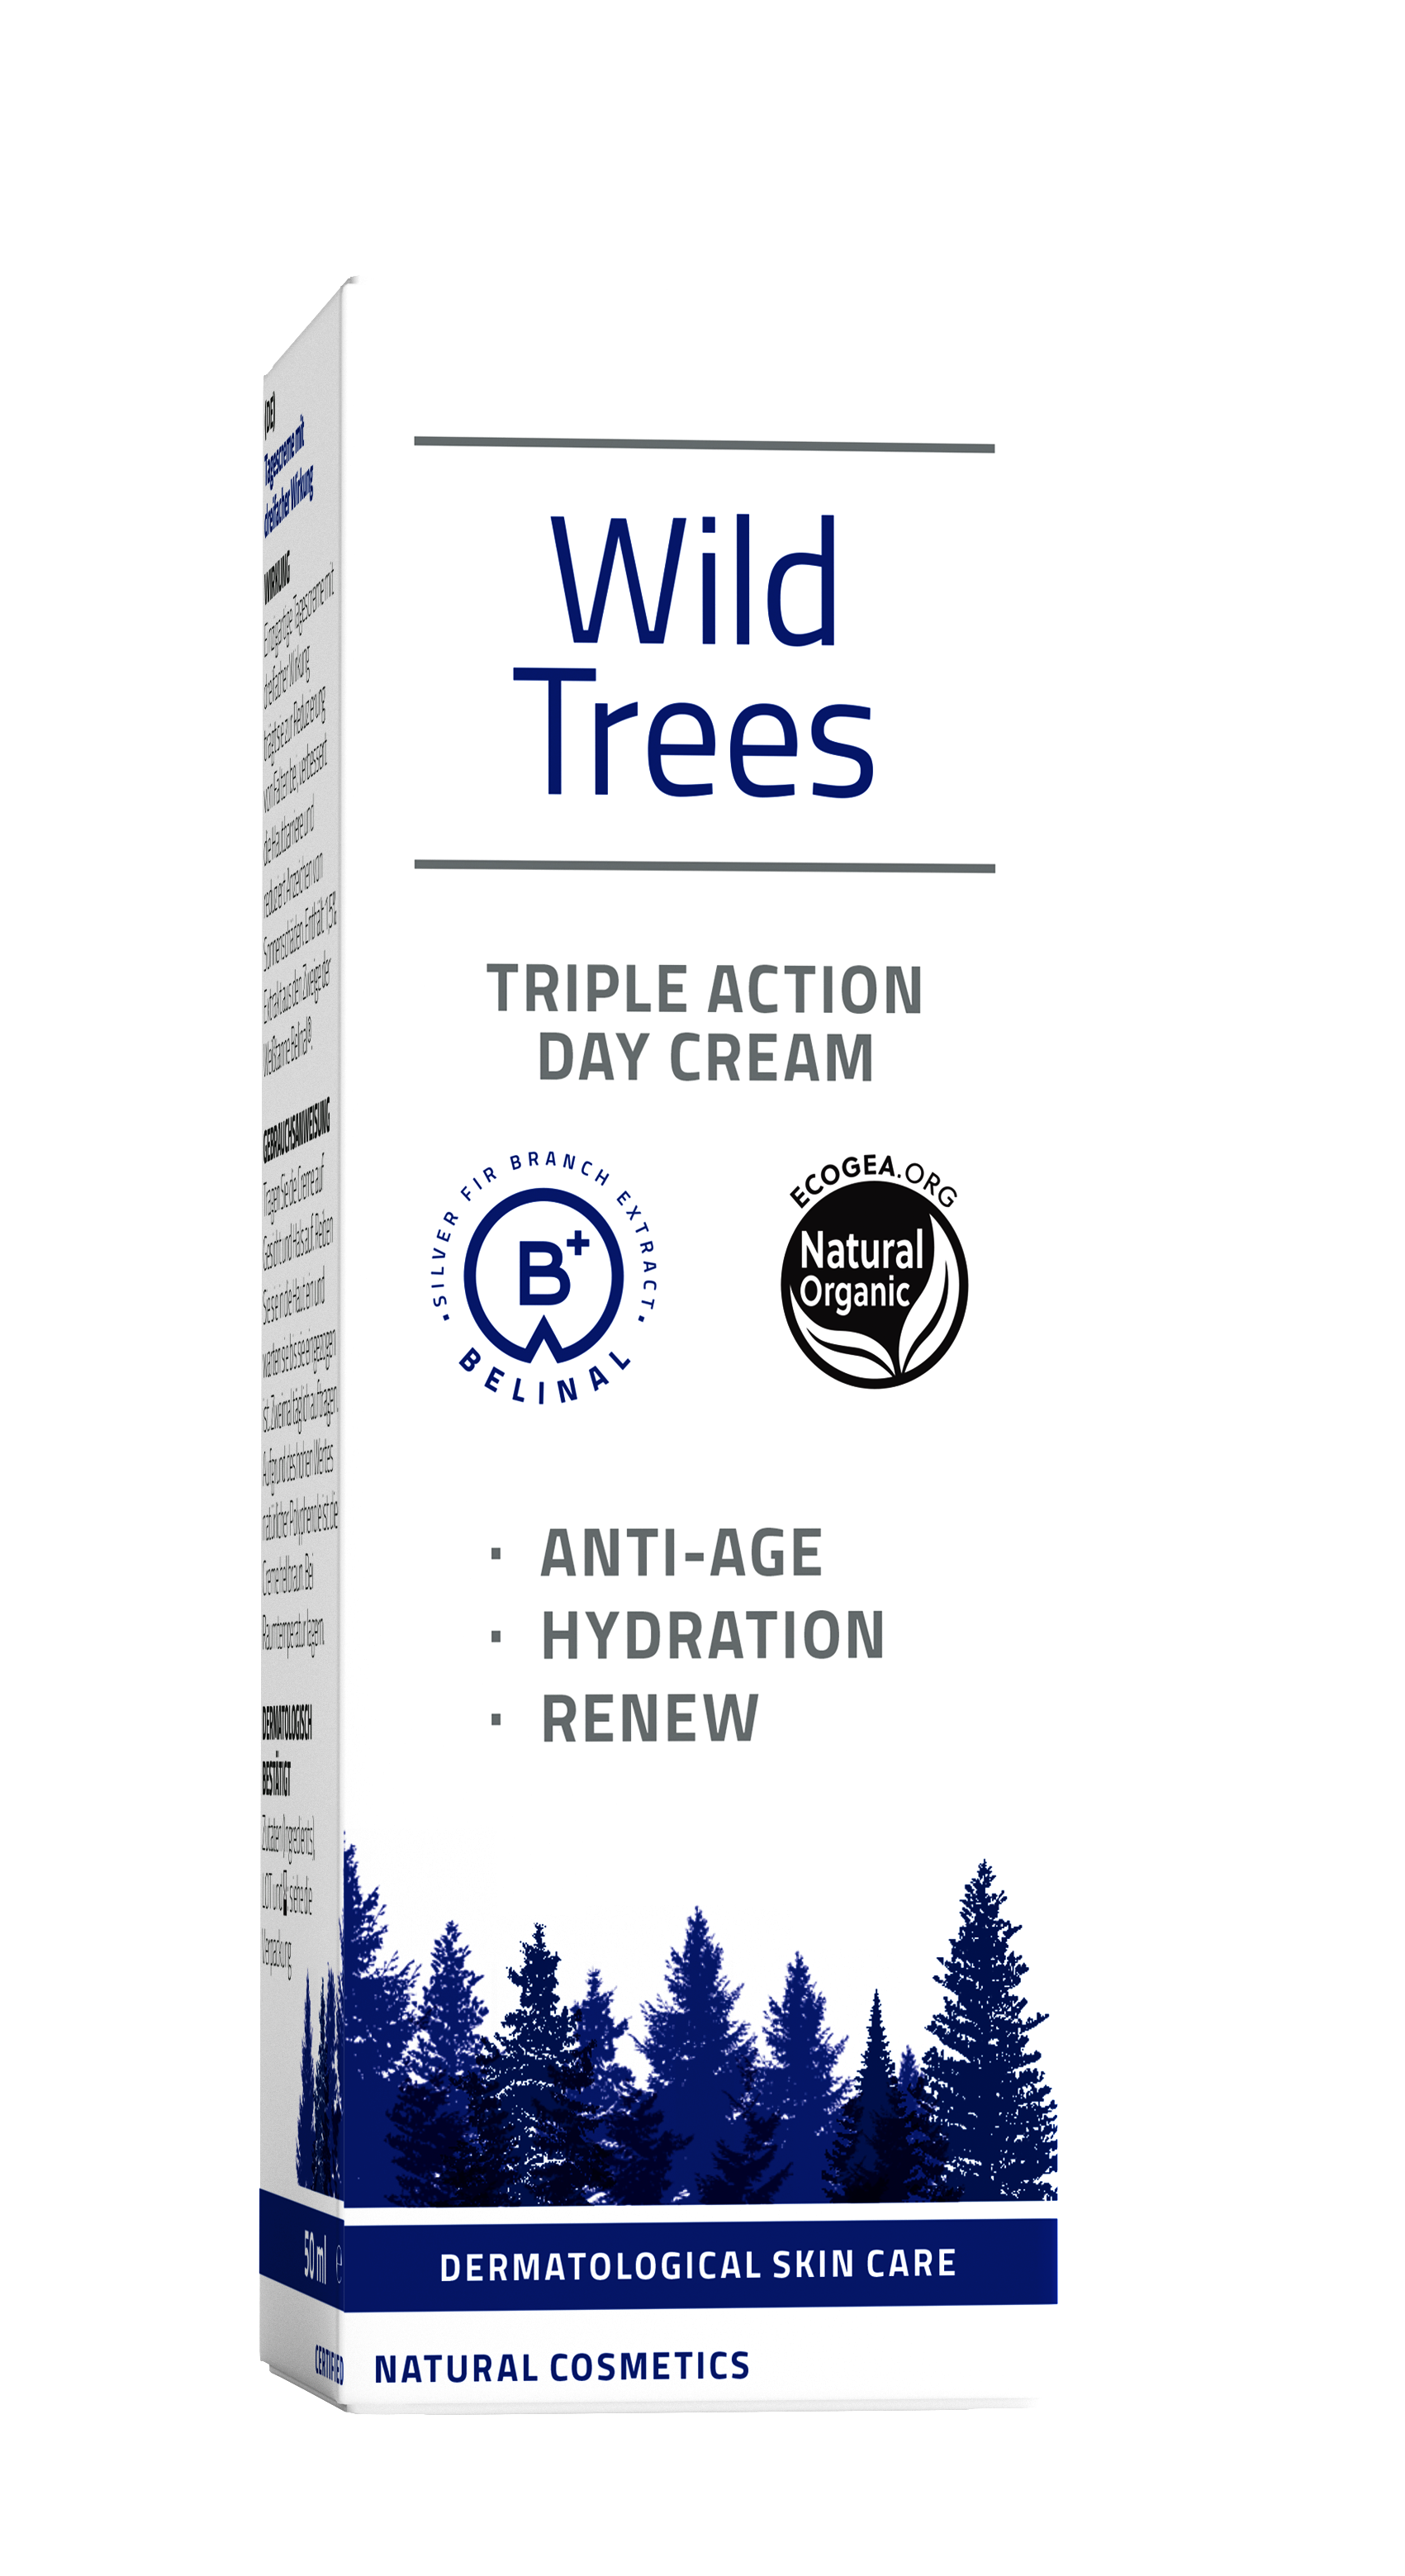 wild trees tadc - silver fir- reduces wrinkles - increases hydration - lightens up brown spots - all skin types